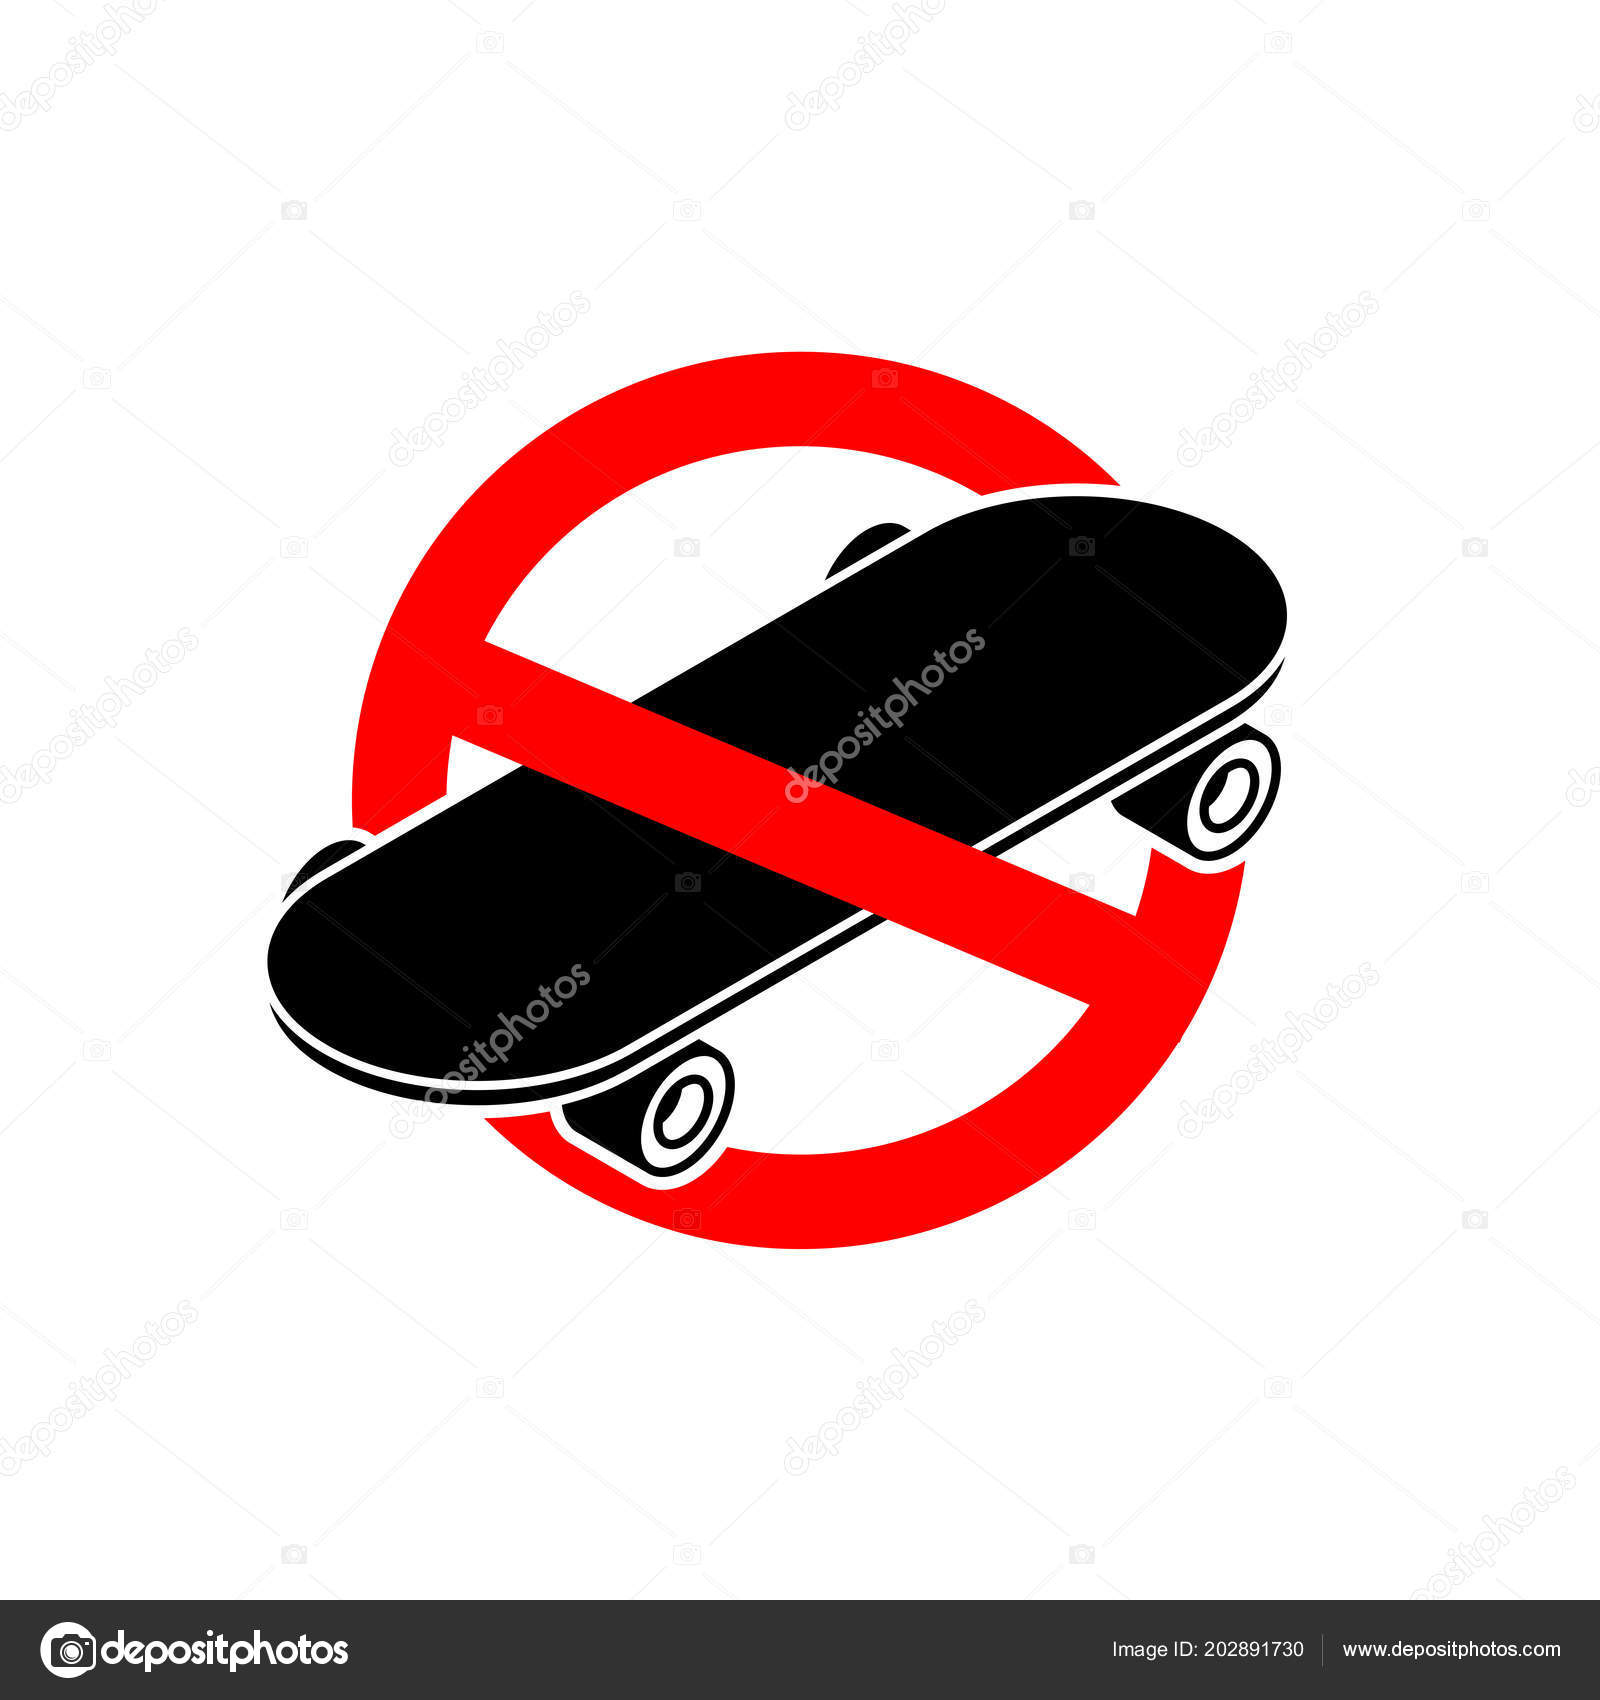 Stop Skateboard Skateboarding Forbidden Ride Board Red Prohibitory